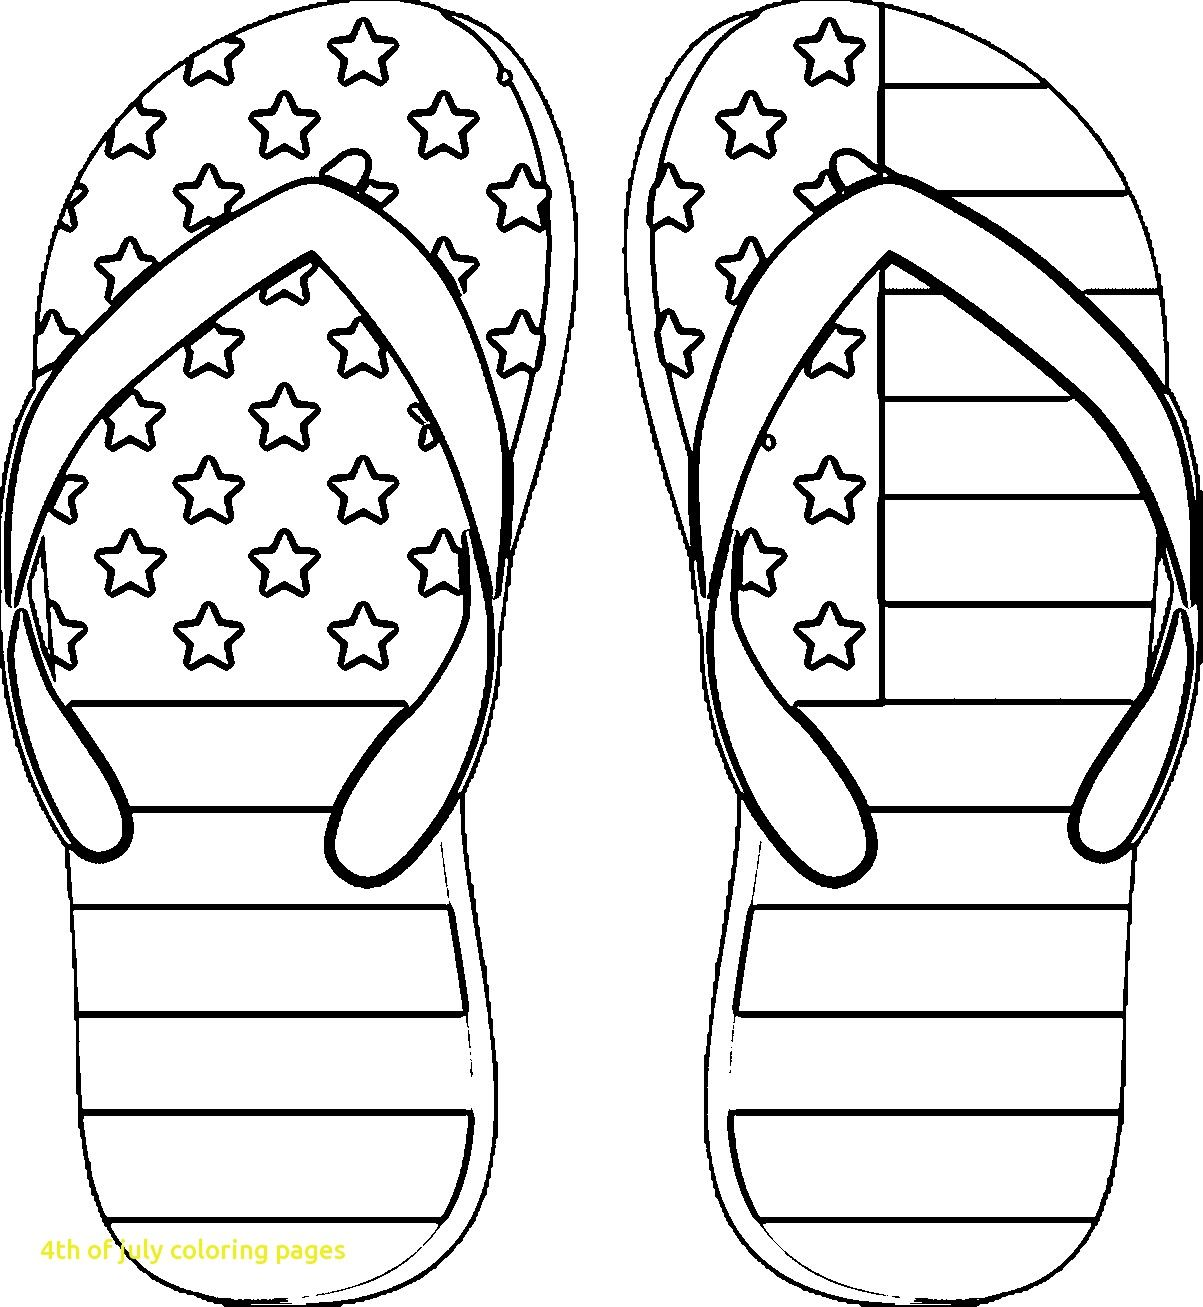 Free Coloring Pages For 4th Of July